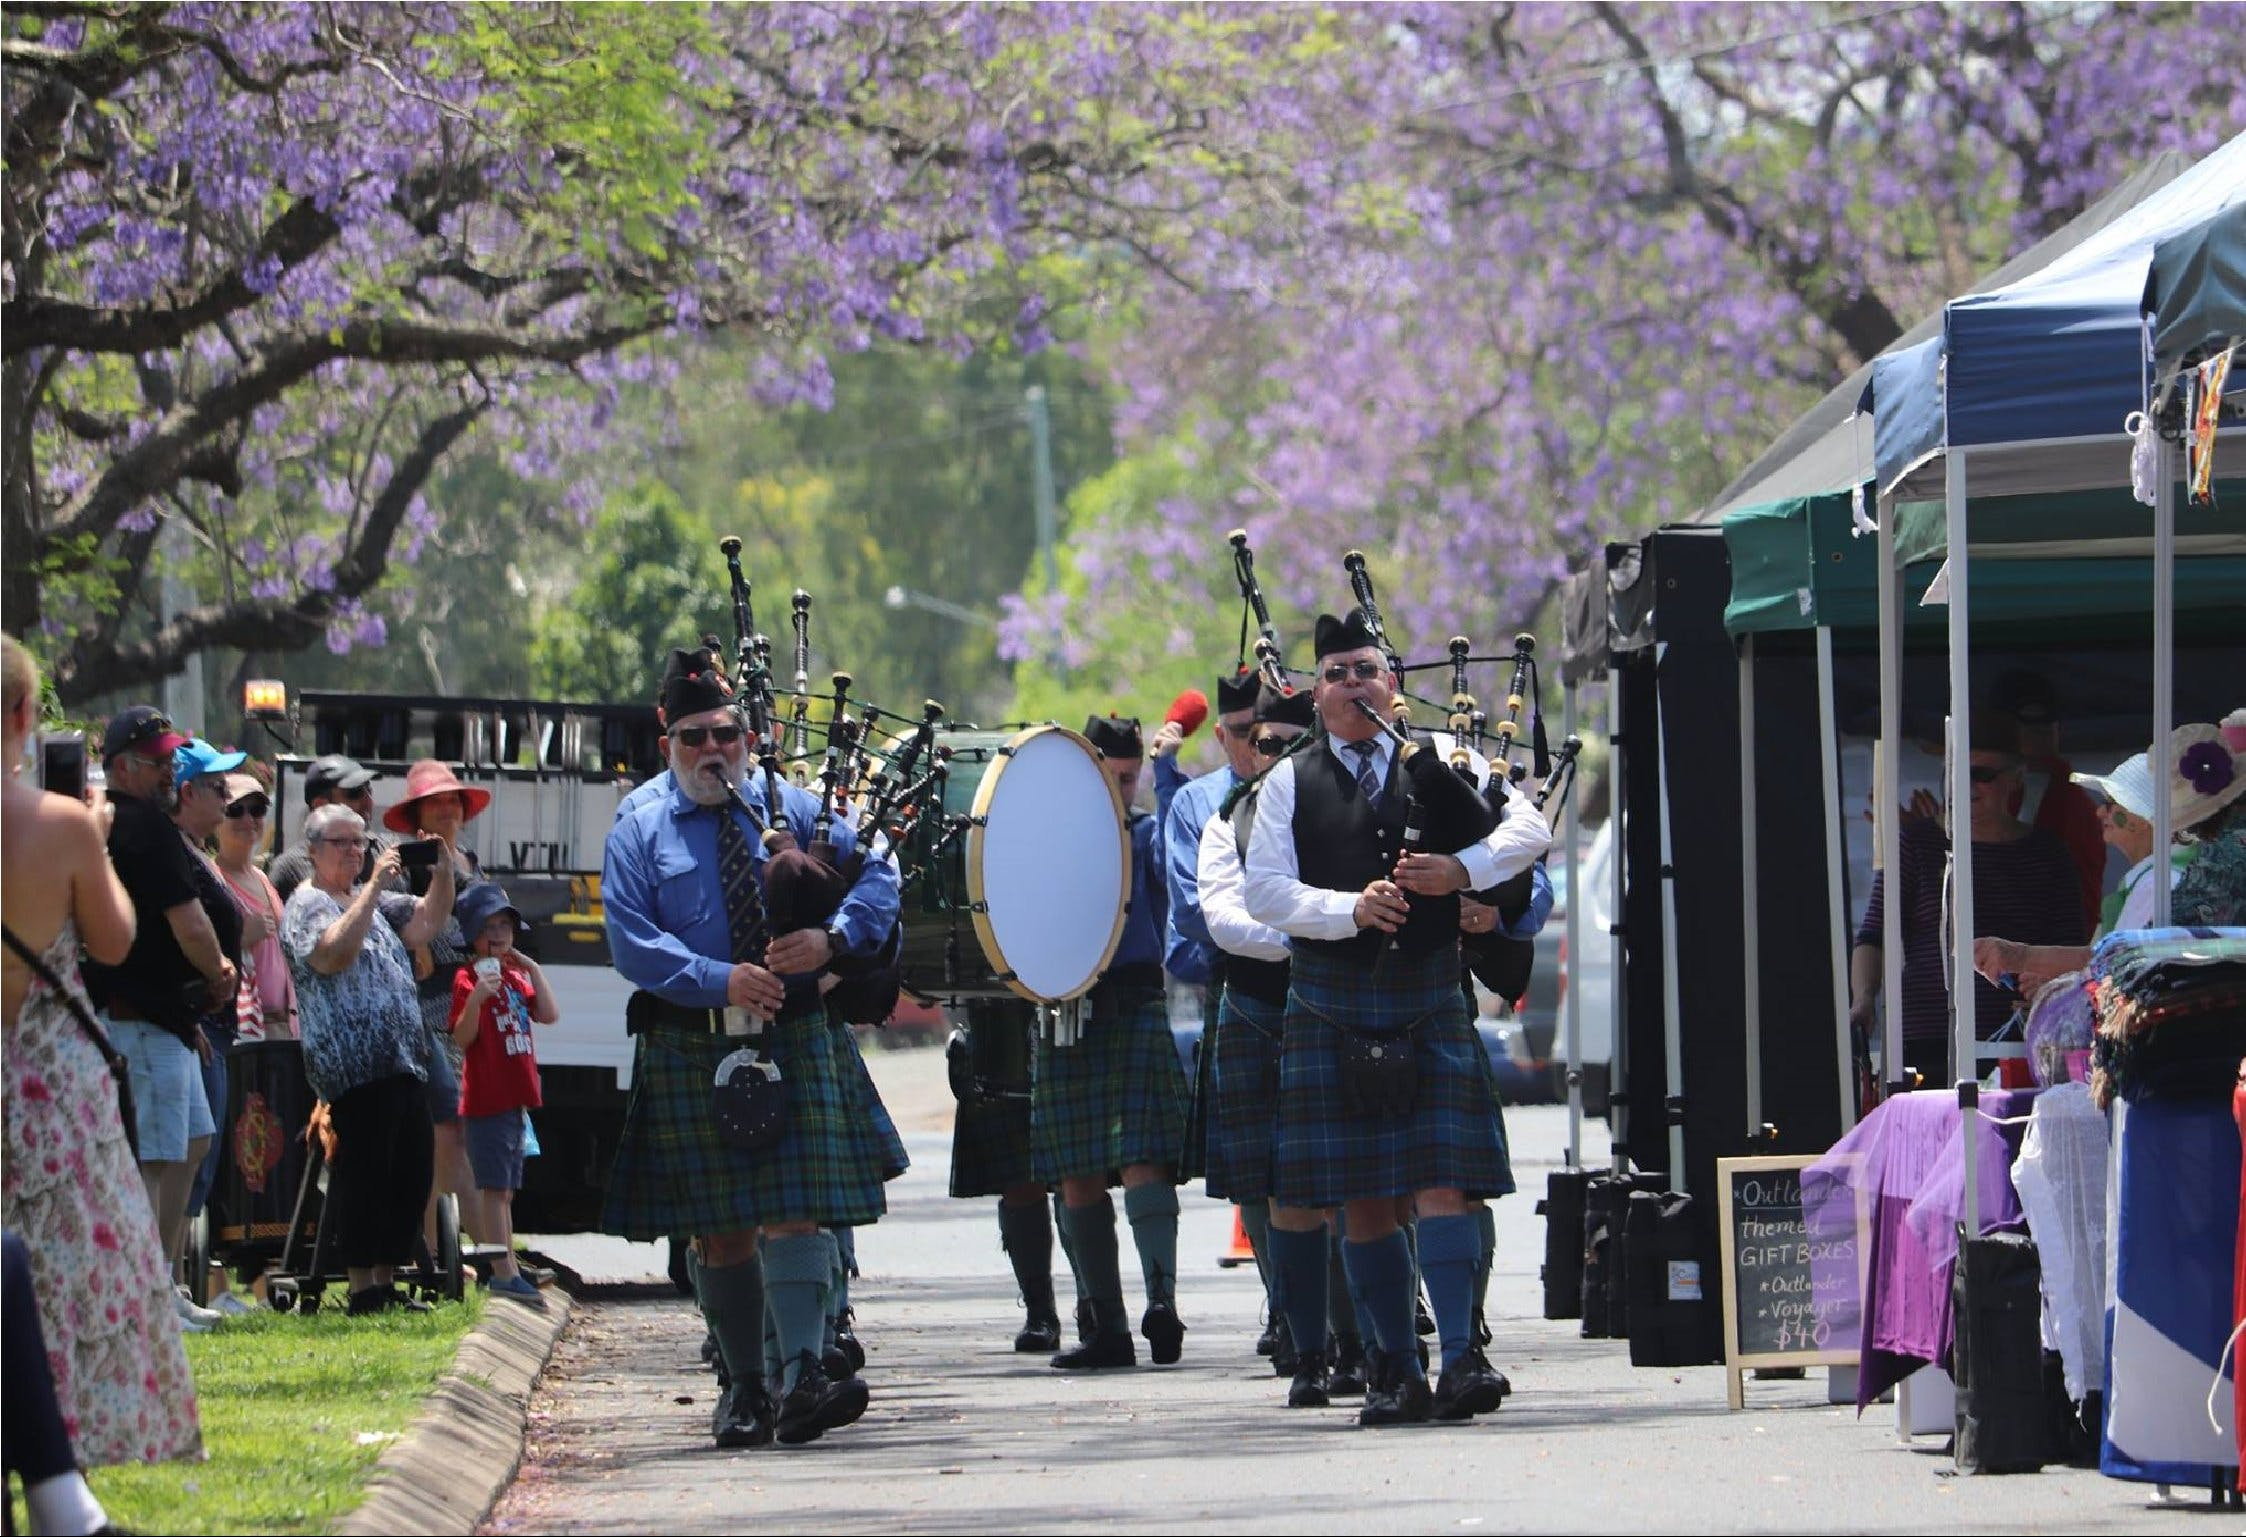 Celtic Festival of Queensland - Tourism Canberra